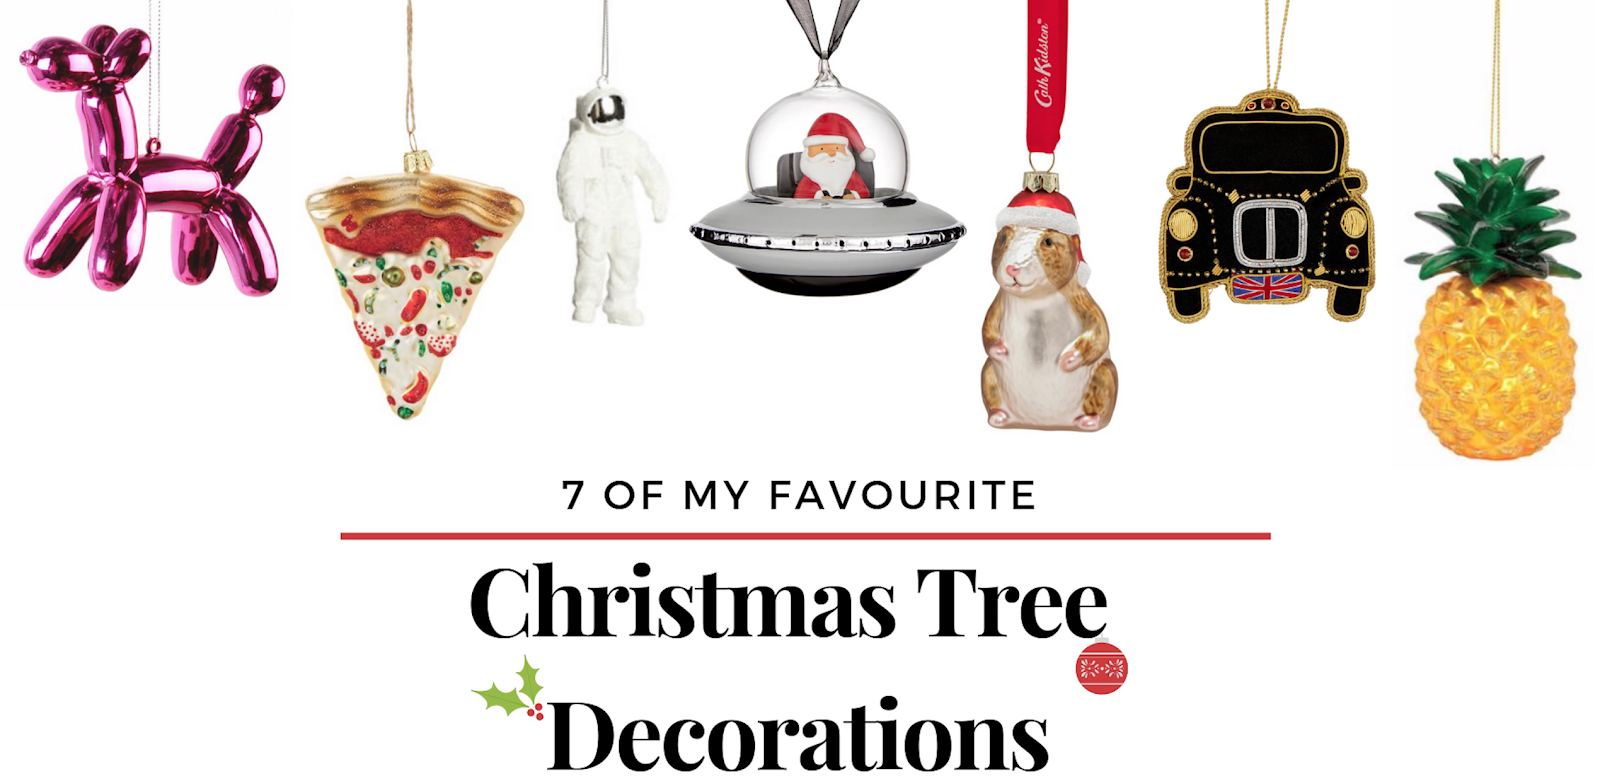 Funny Christmas Tree Decorations